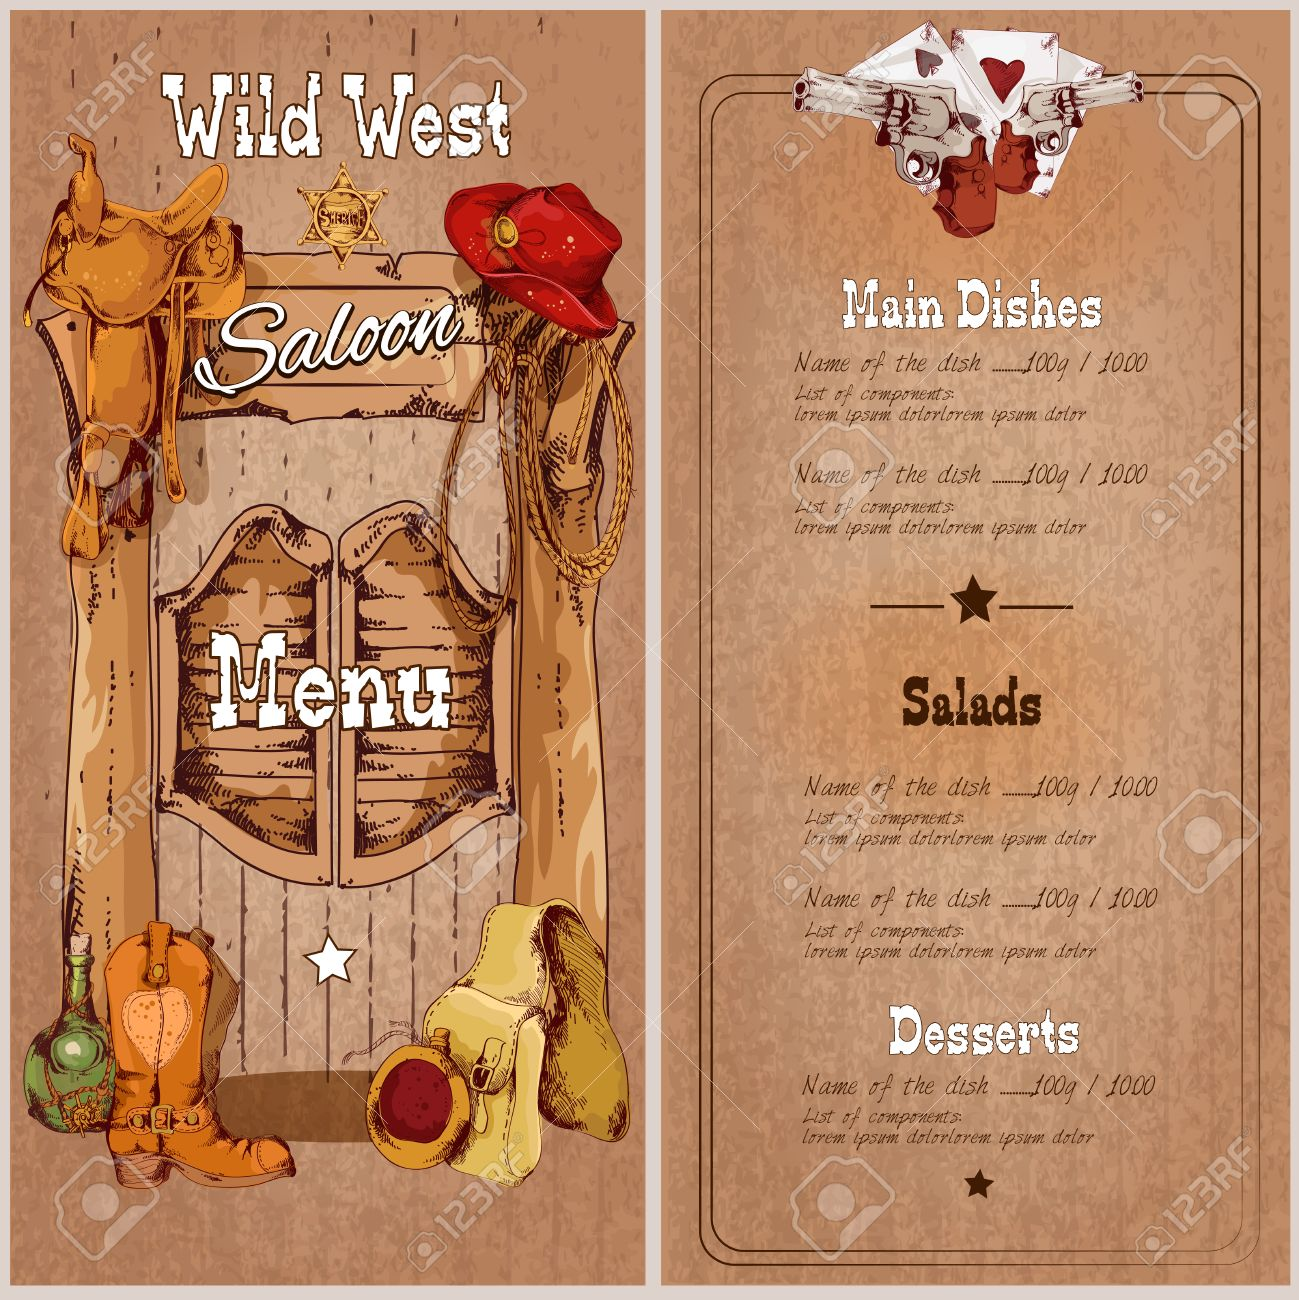 Wild West Saloon Restaurant Menu Template With Saddle Cowboy ...